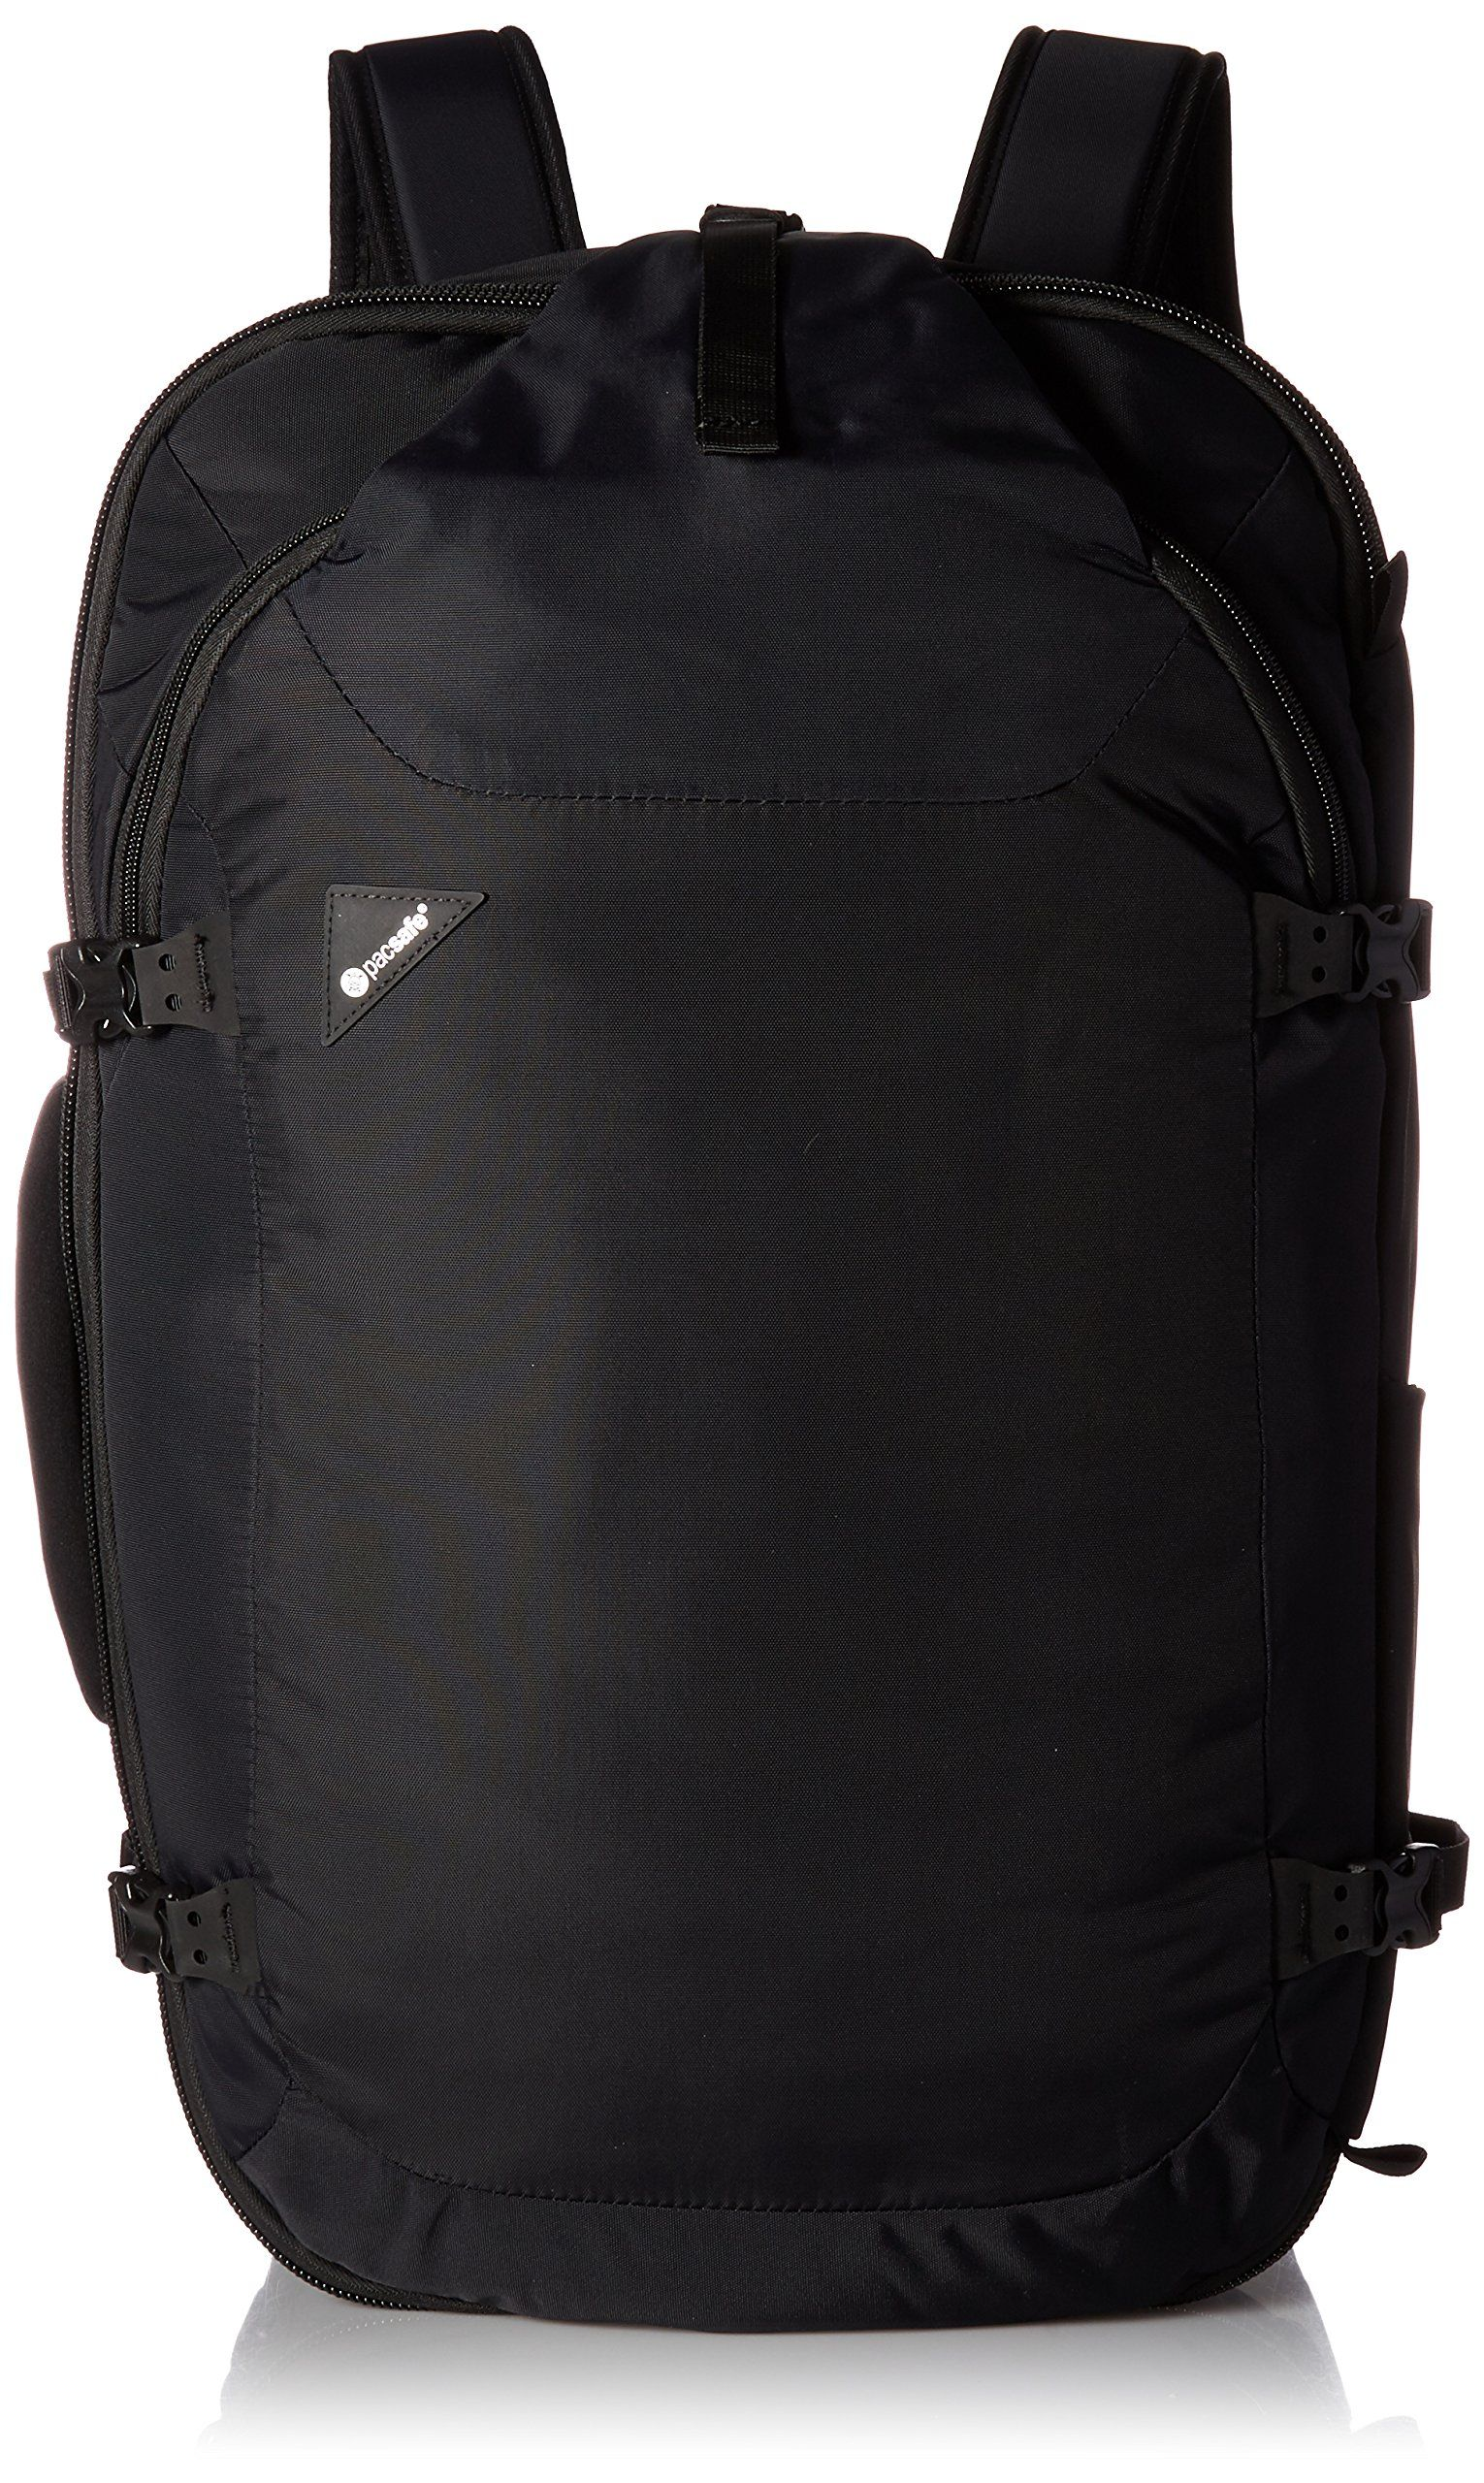 5f035b8155 Pacsafe Venturesafe EXP45 Anti-Theft Carry-On Travel Backpack